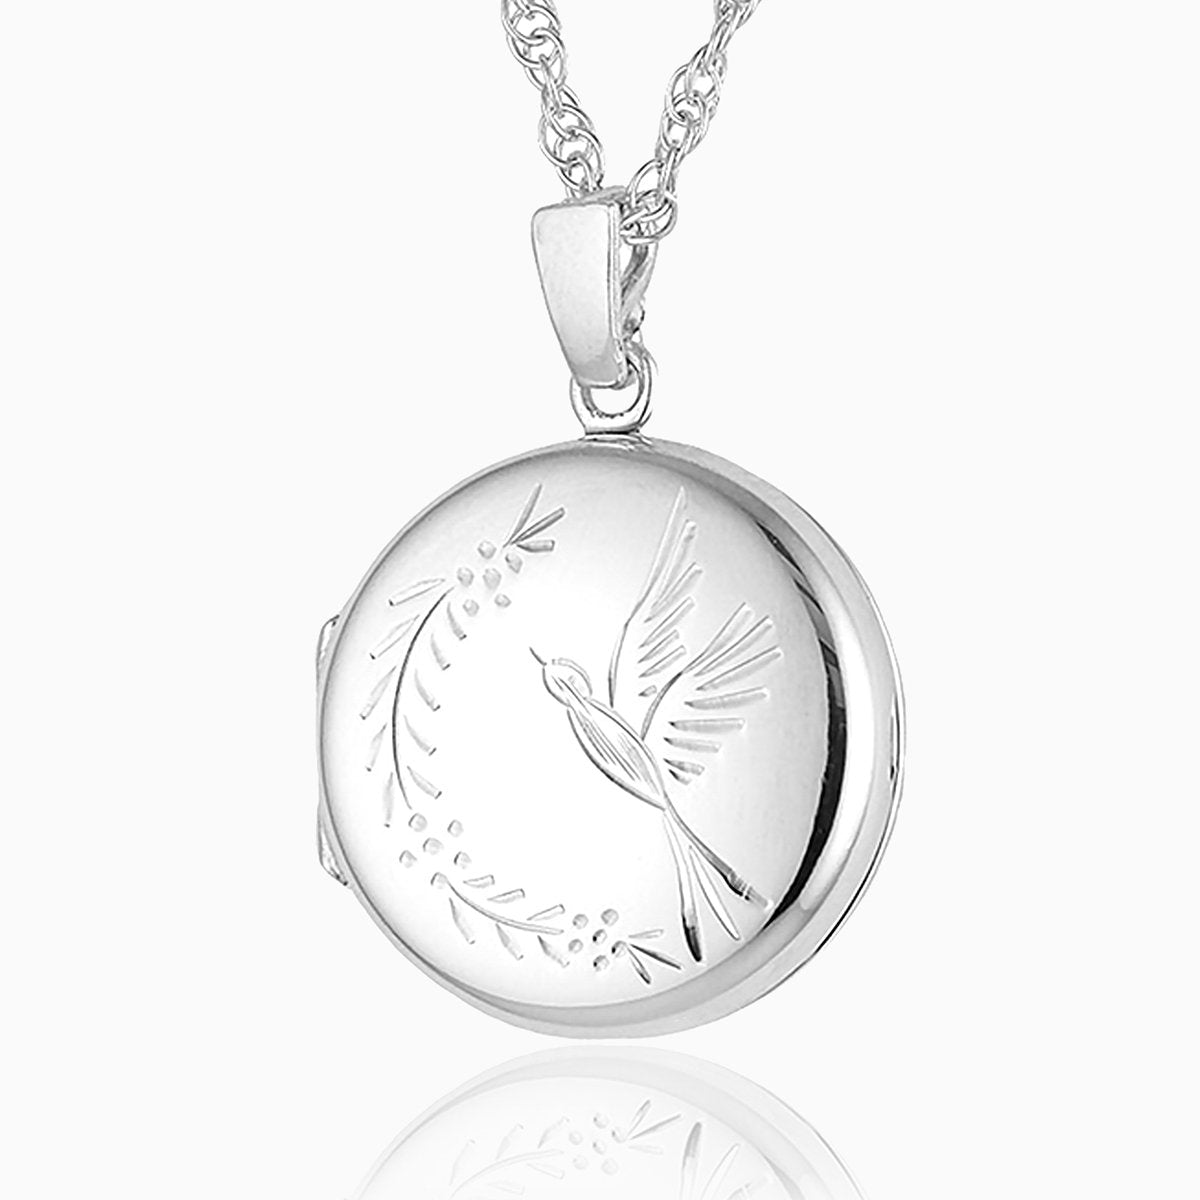 Product title: Hand Engraved Silver Round Bird Locket, product type: Locket